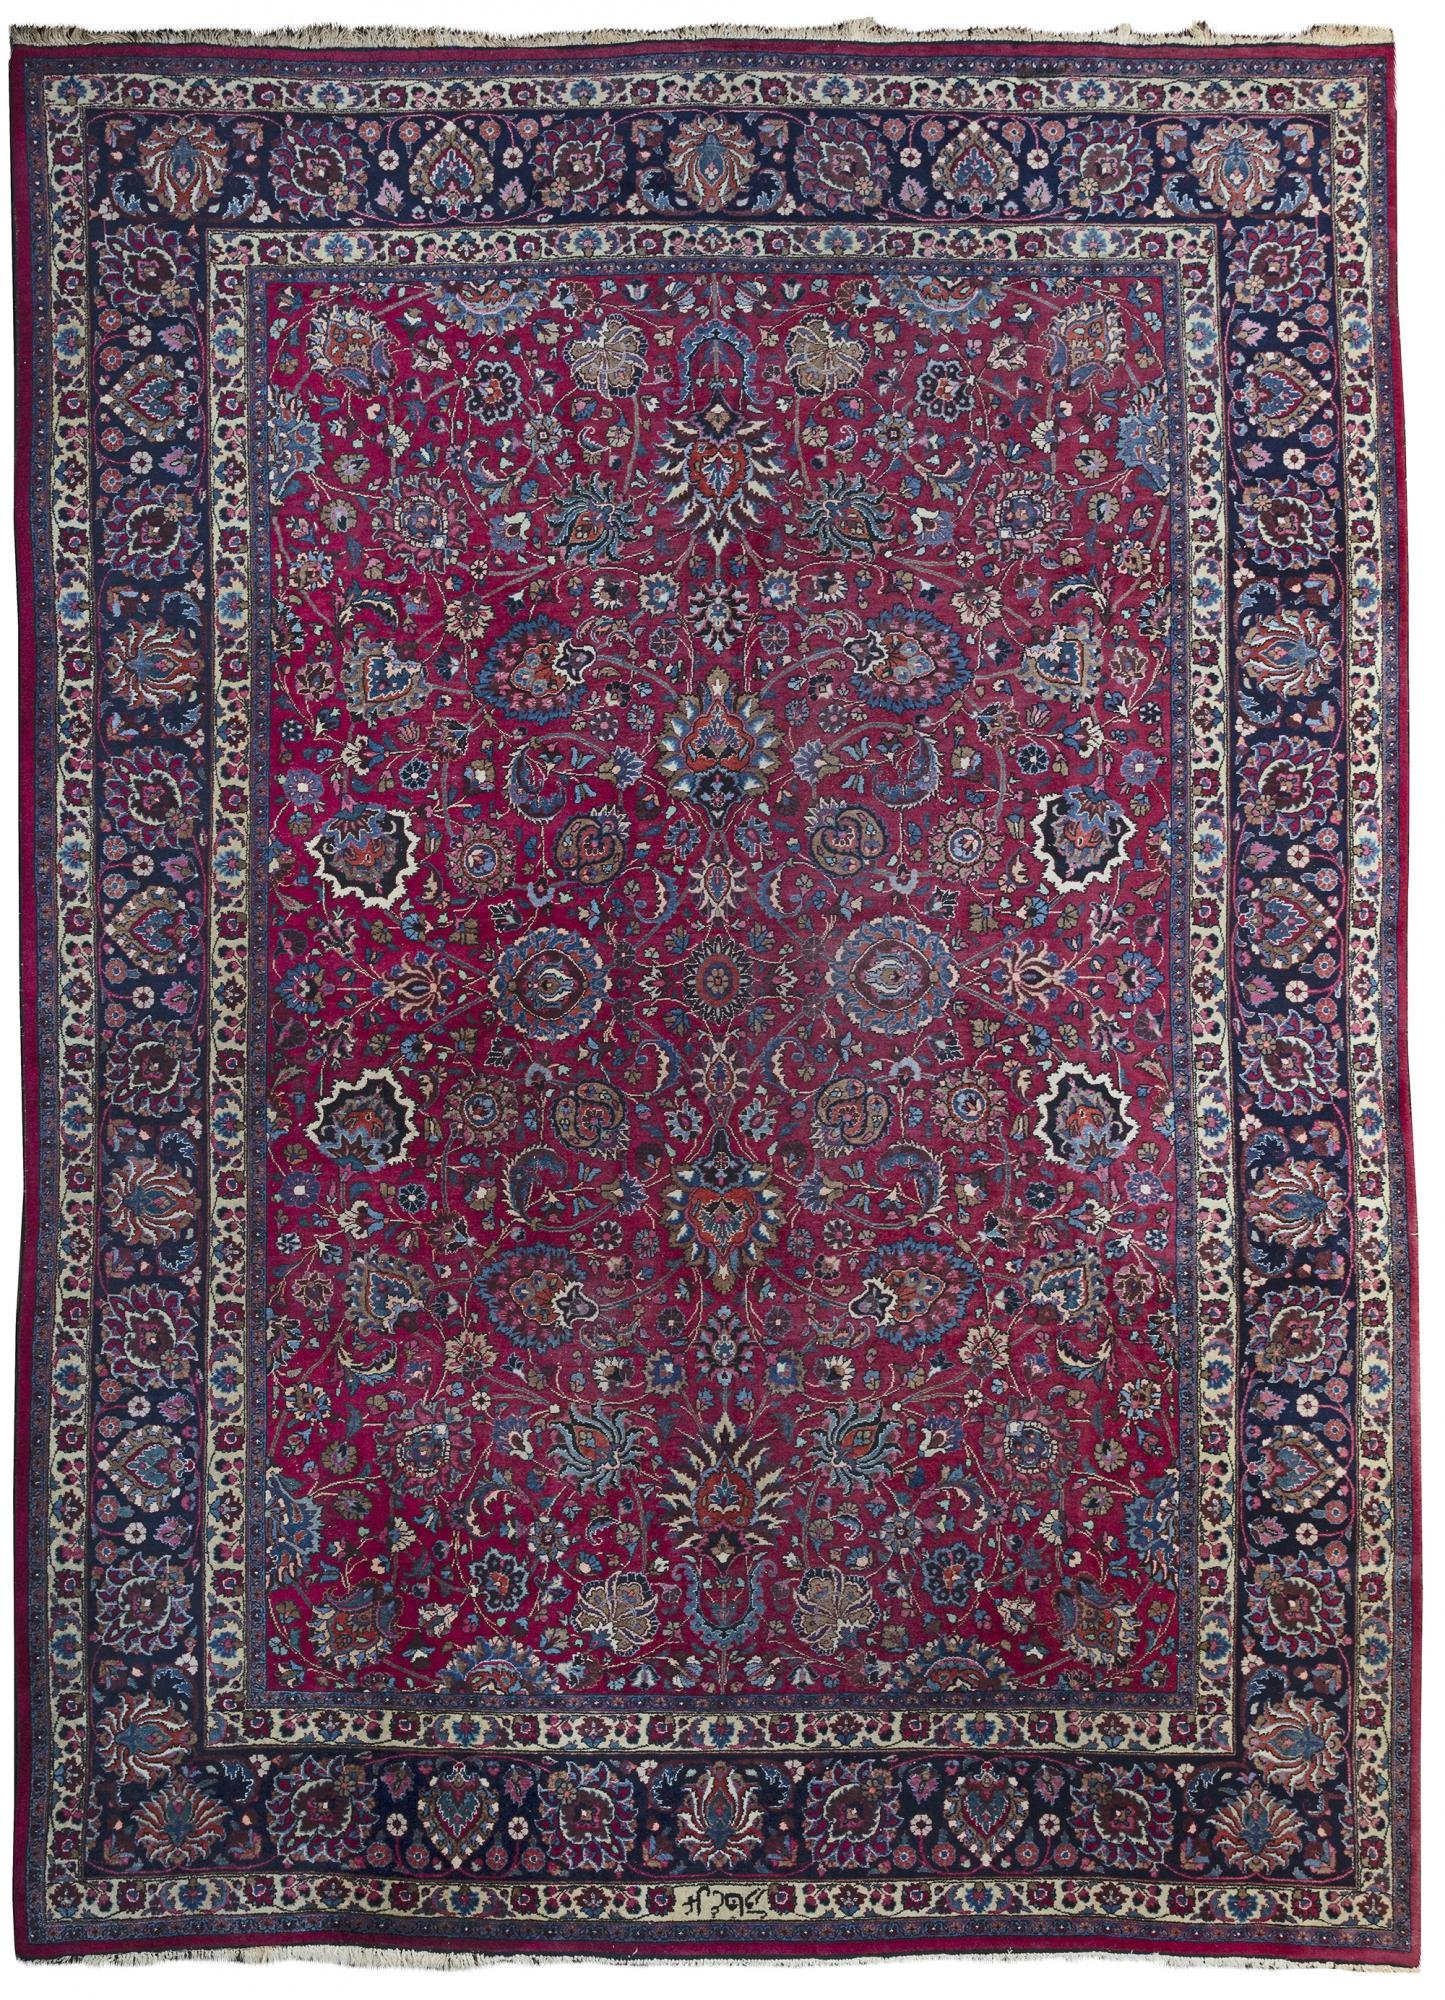 A LARGE SIGNED MESHED CARPET, NORTH-EAST PERSIA